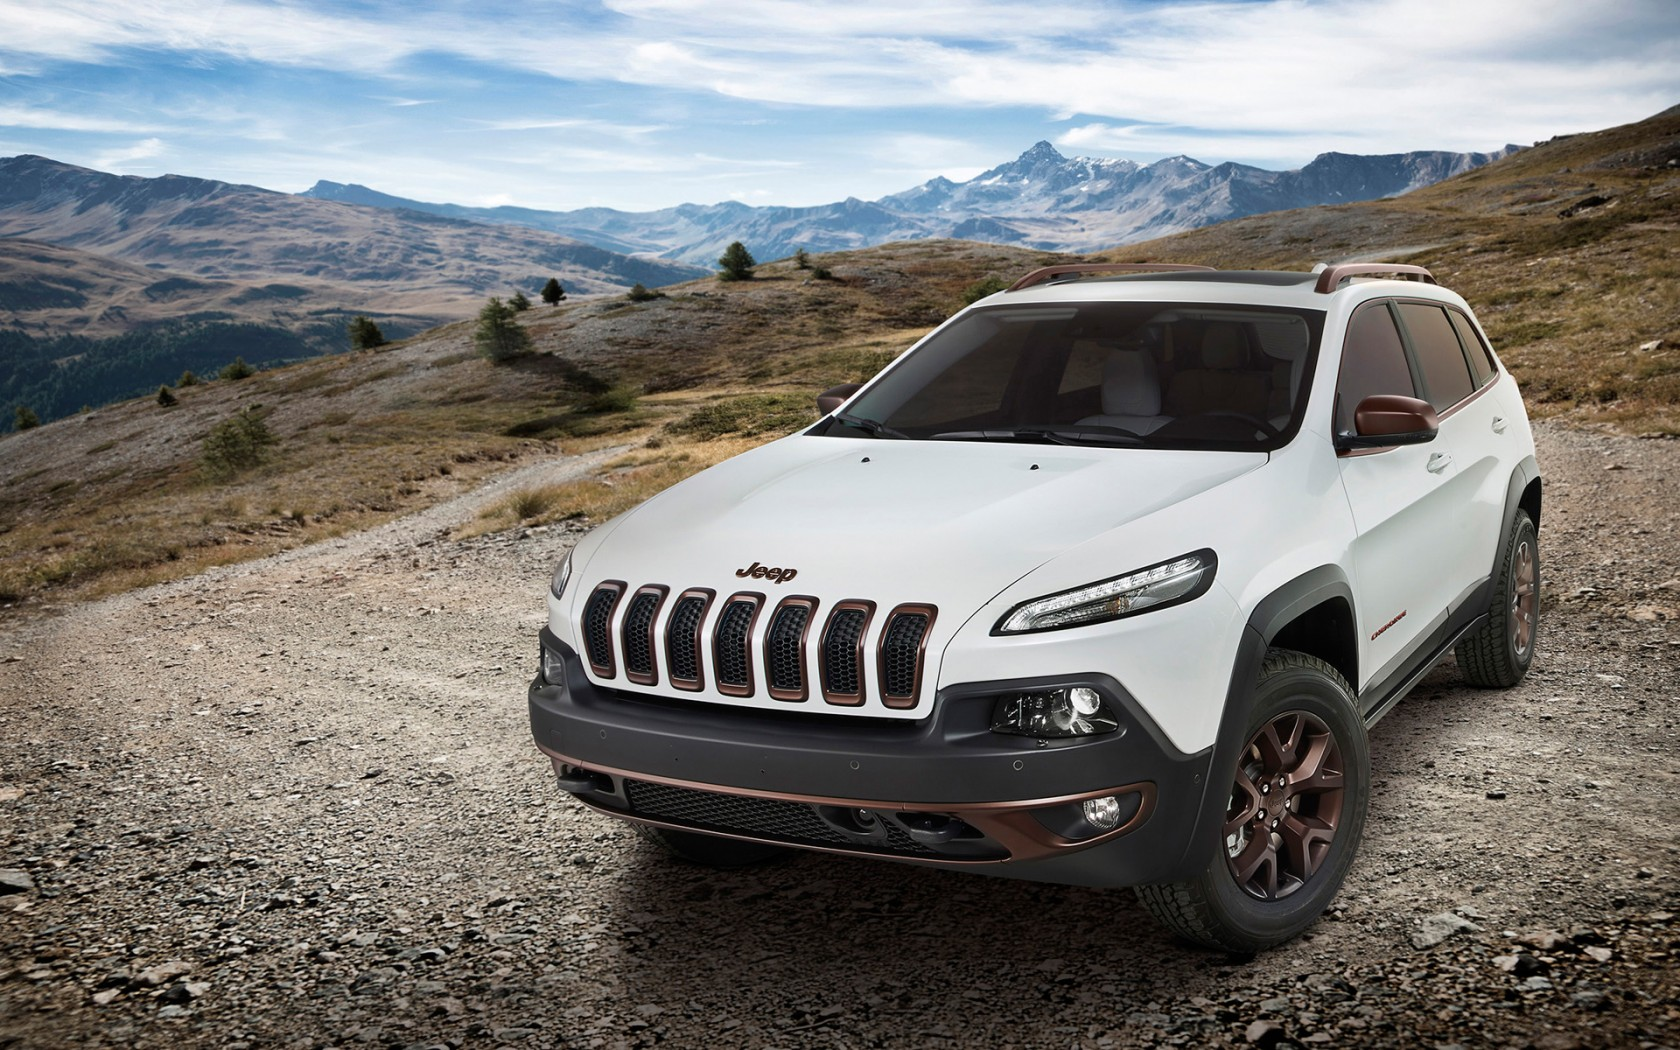 2014 Jeep Cherokee Sageland Concept 2 Wallpaper | HD Car ...